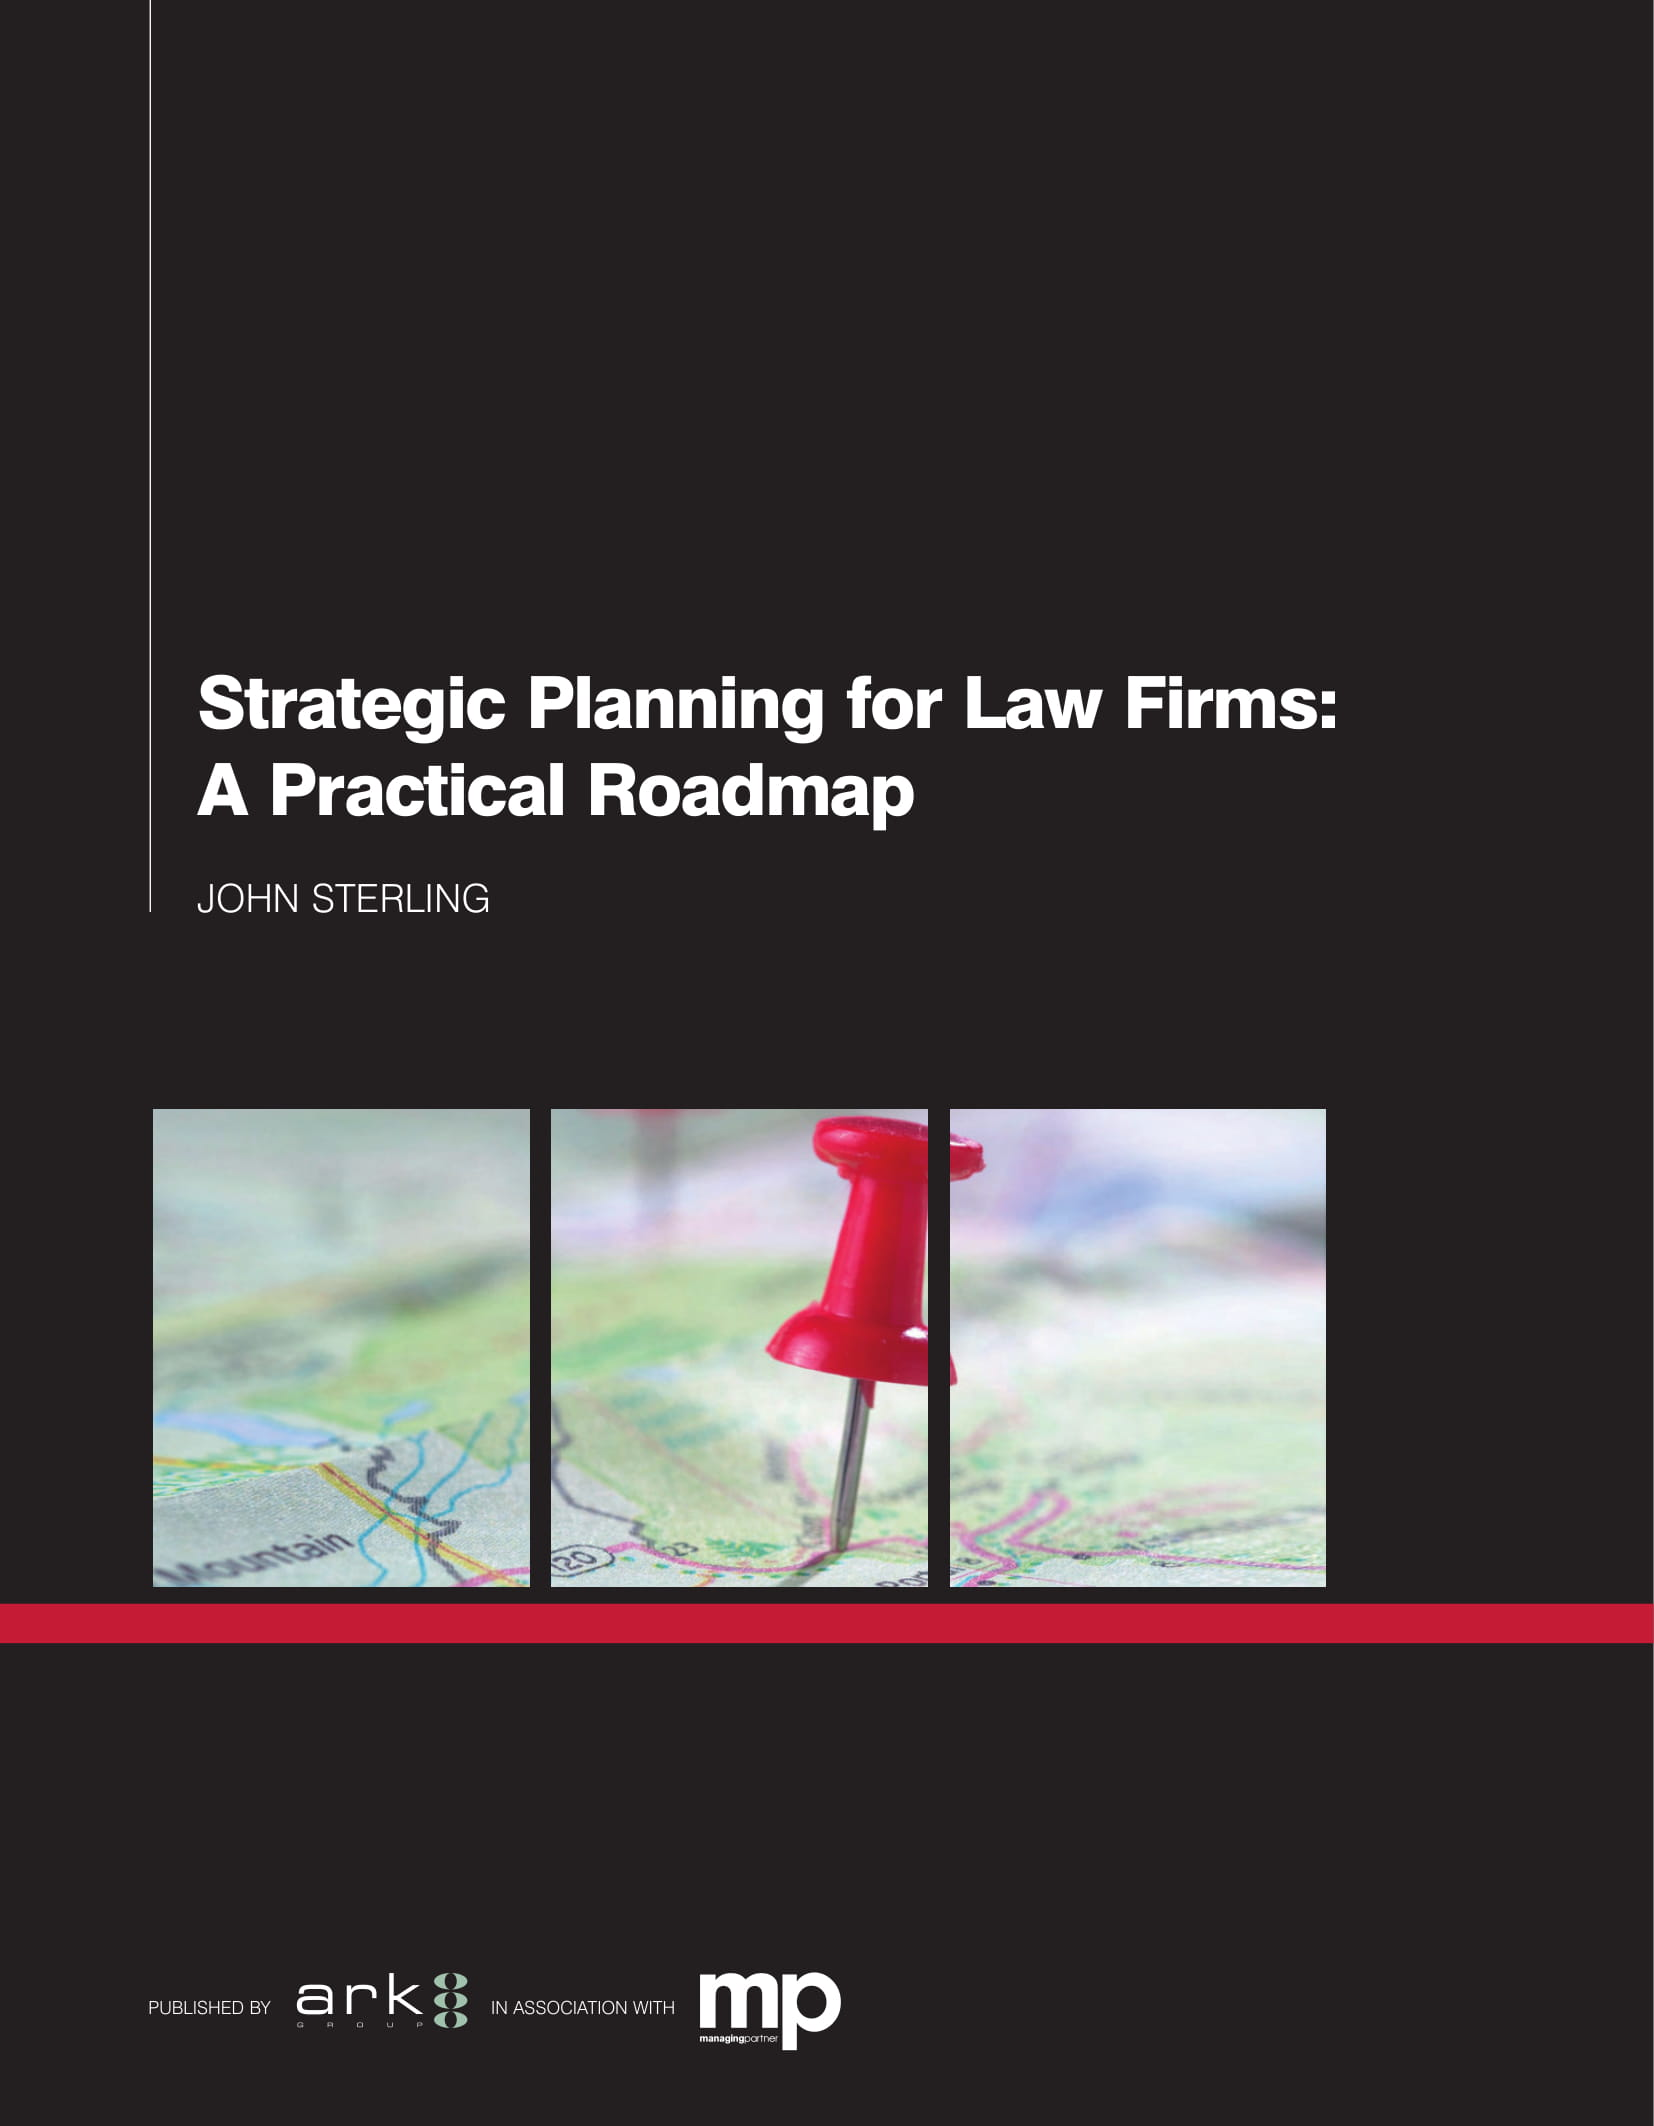 legal strategic planning for law firms example 01